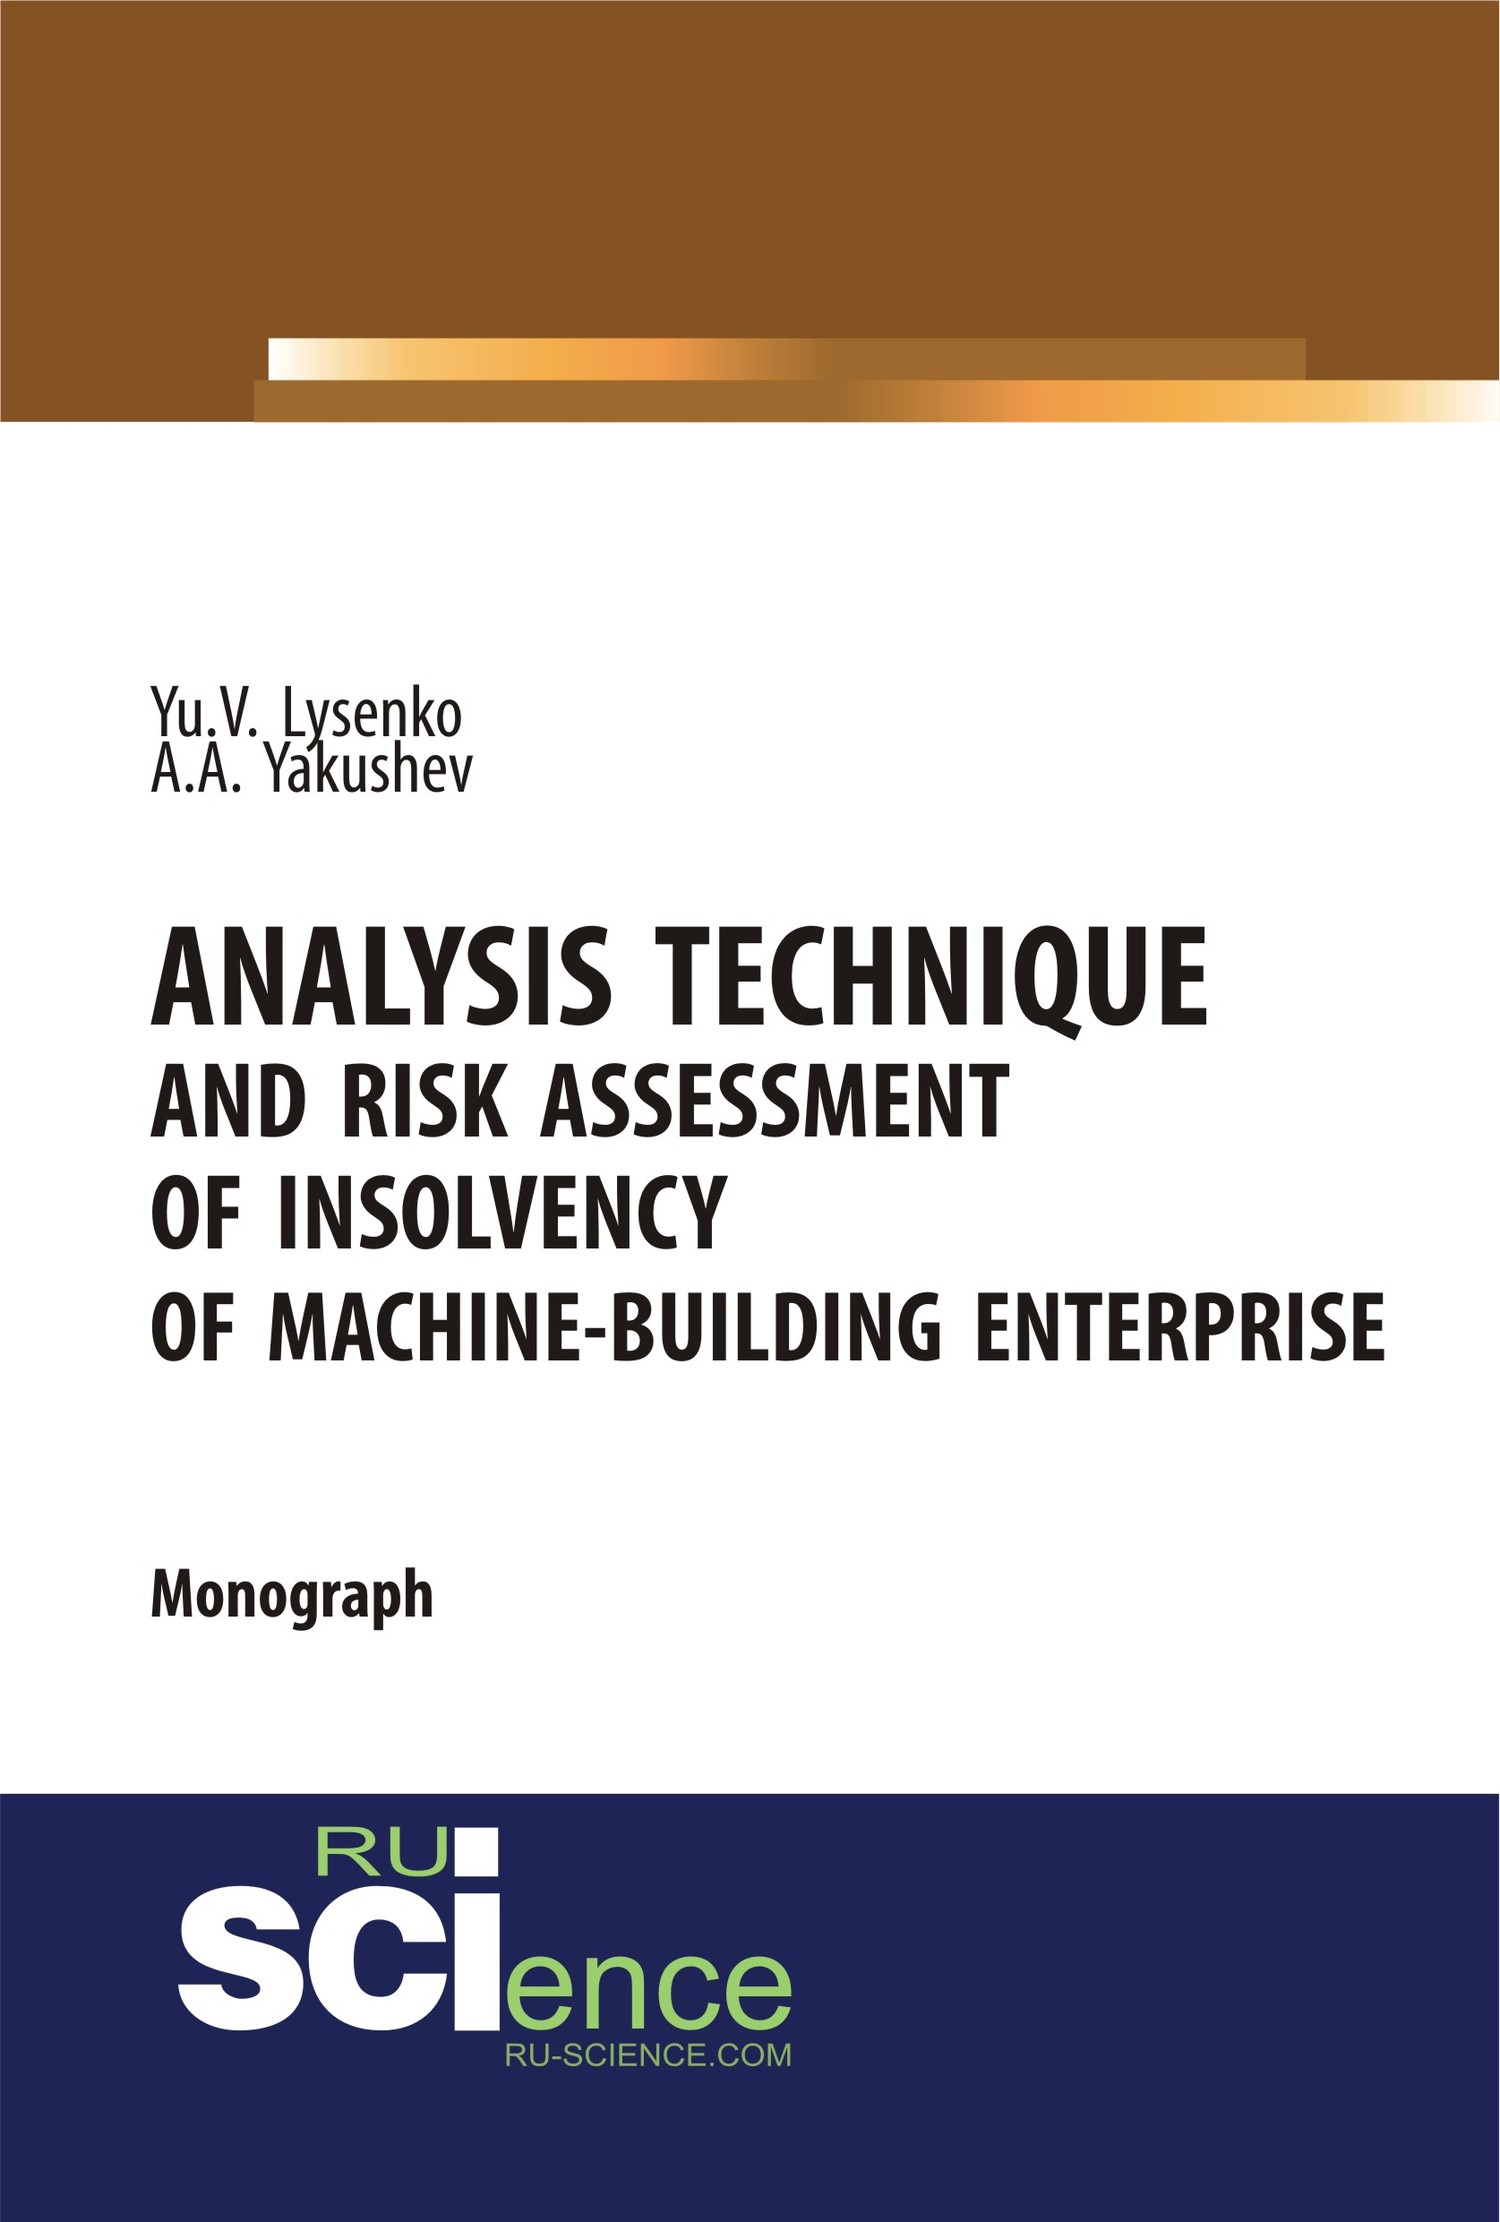 Ю. В. Лысенко Analysis technique and risk assessment of insolvency of machine-building enterprise eisenbrand g risk assessment of phytochemicals in food novel approaches